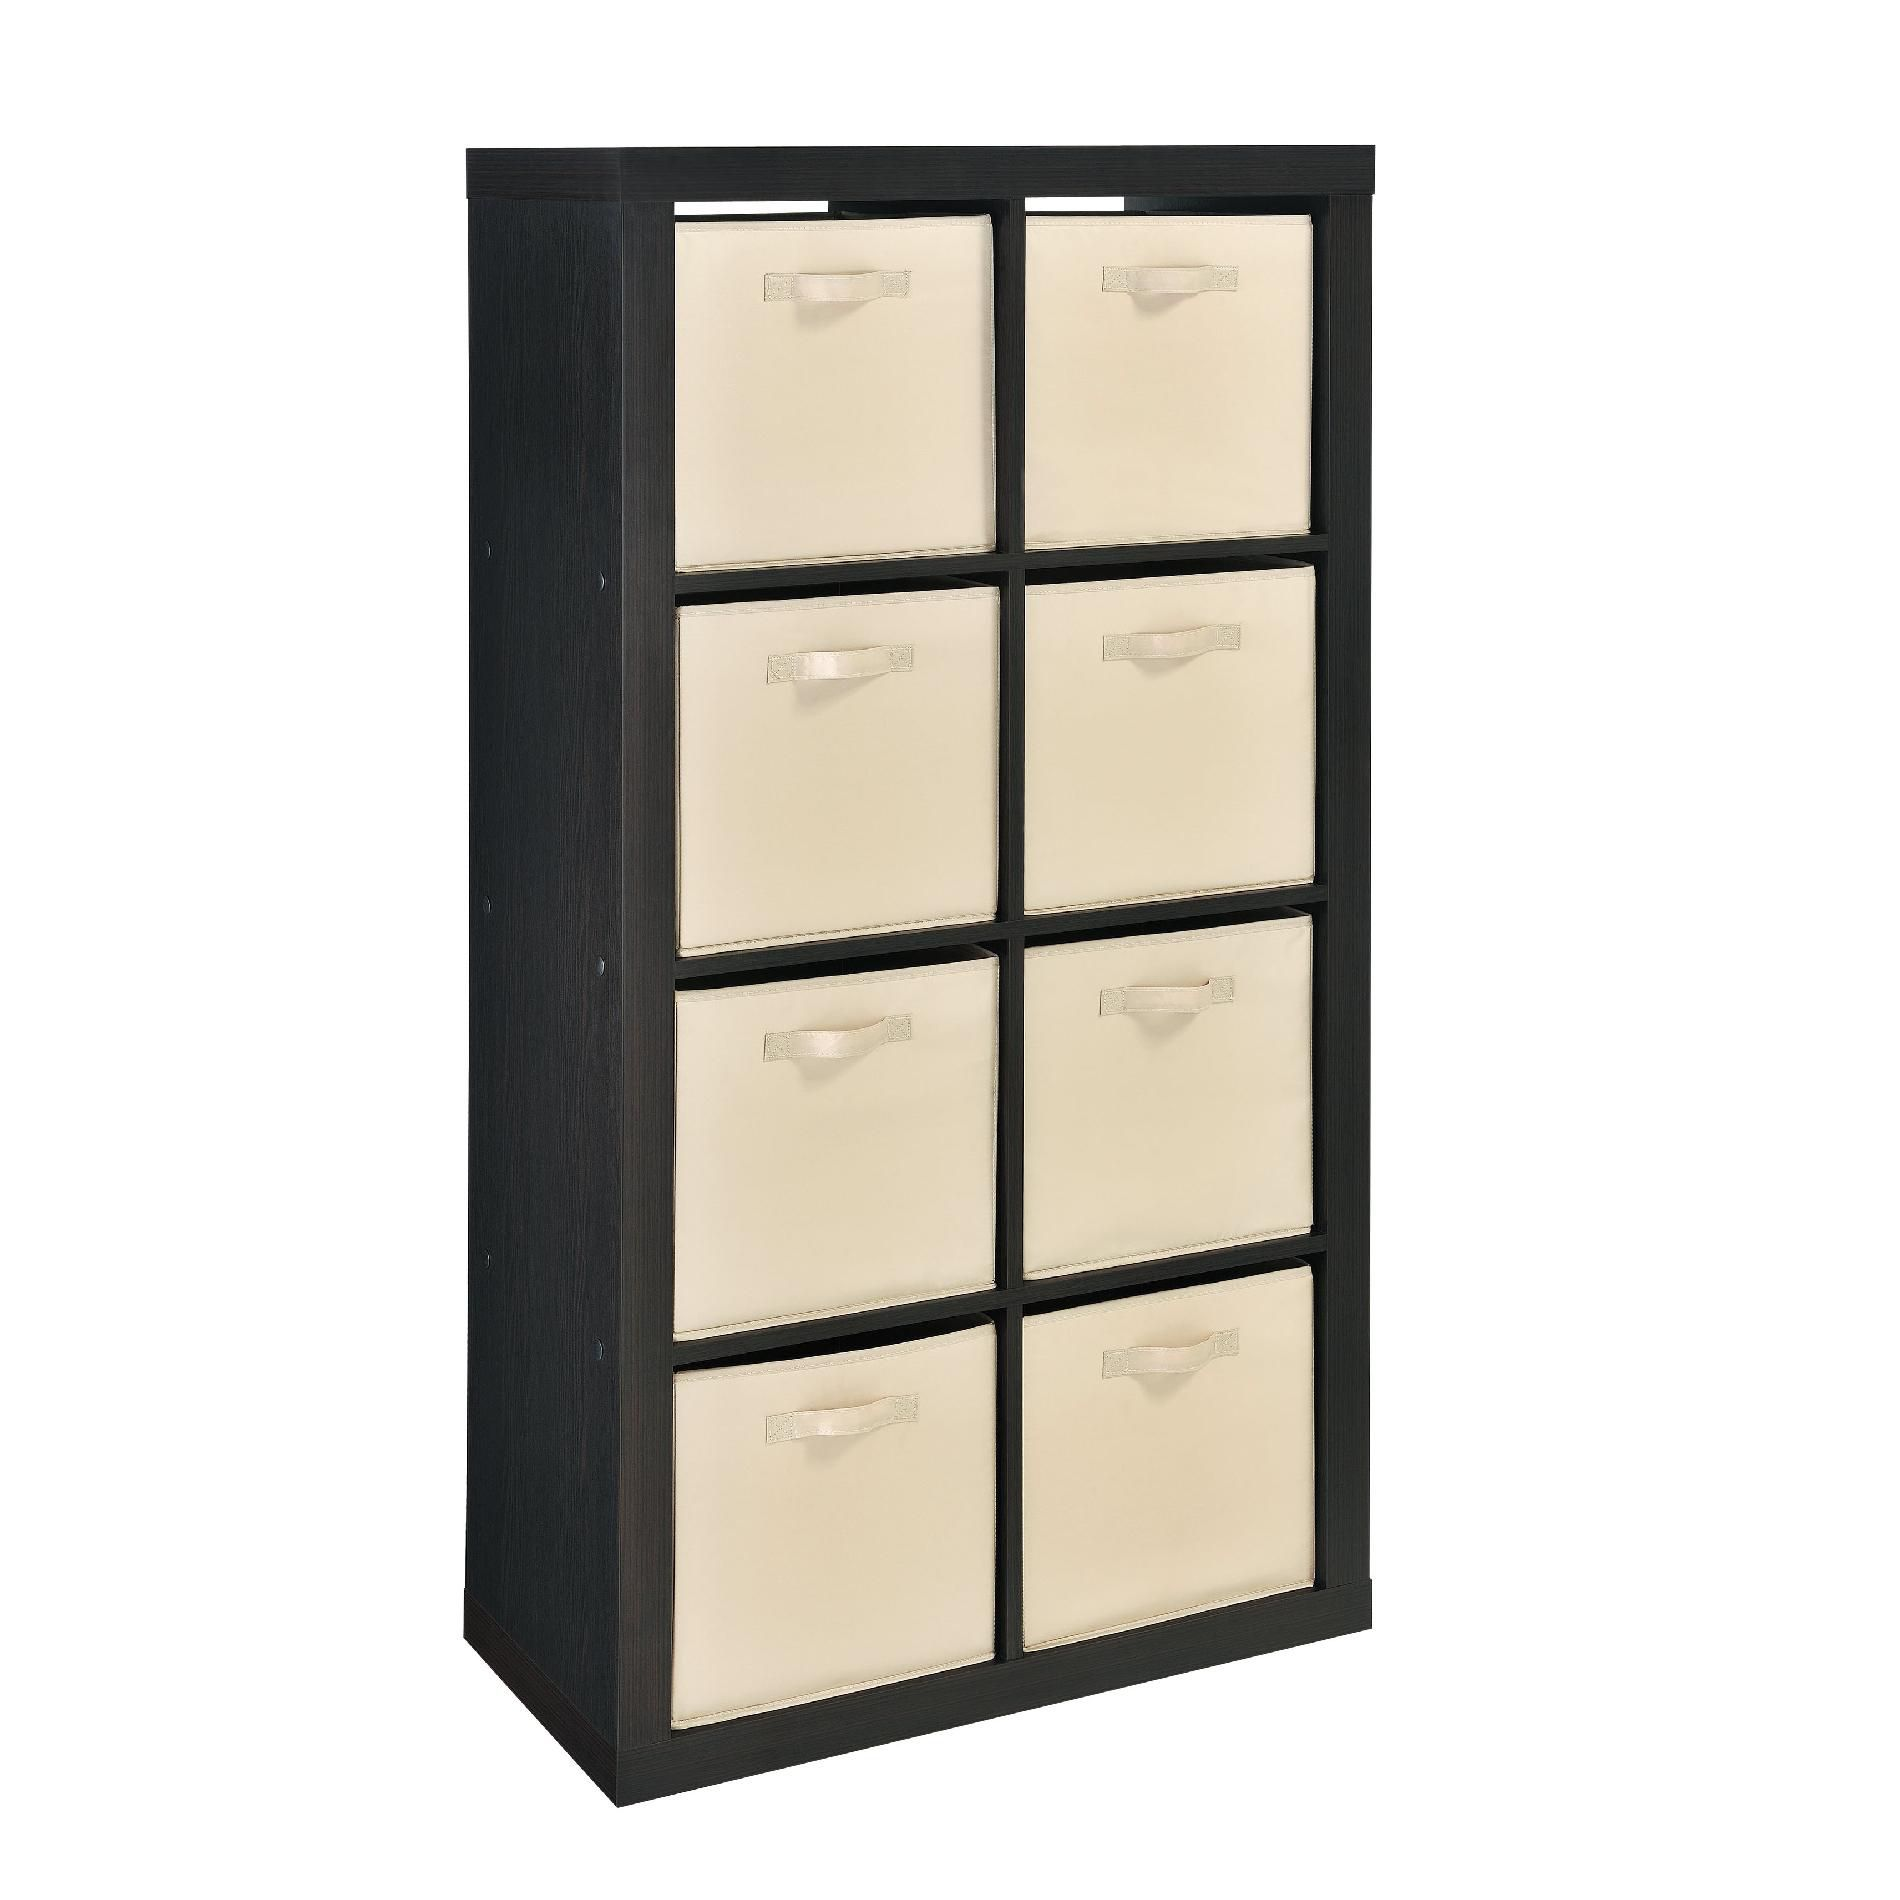 8 Cube Organizer With Bins